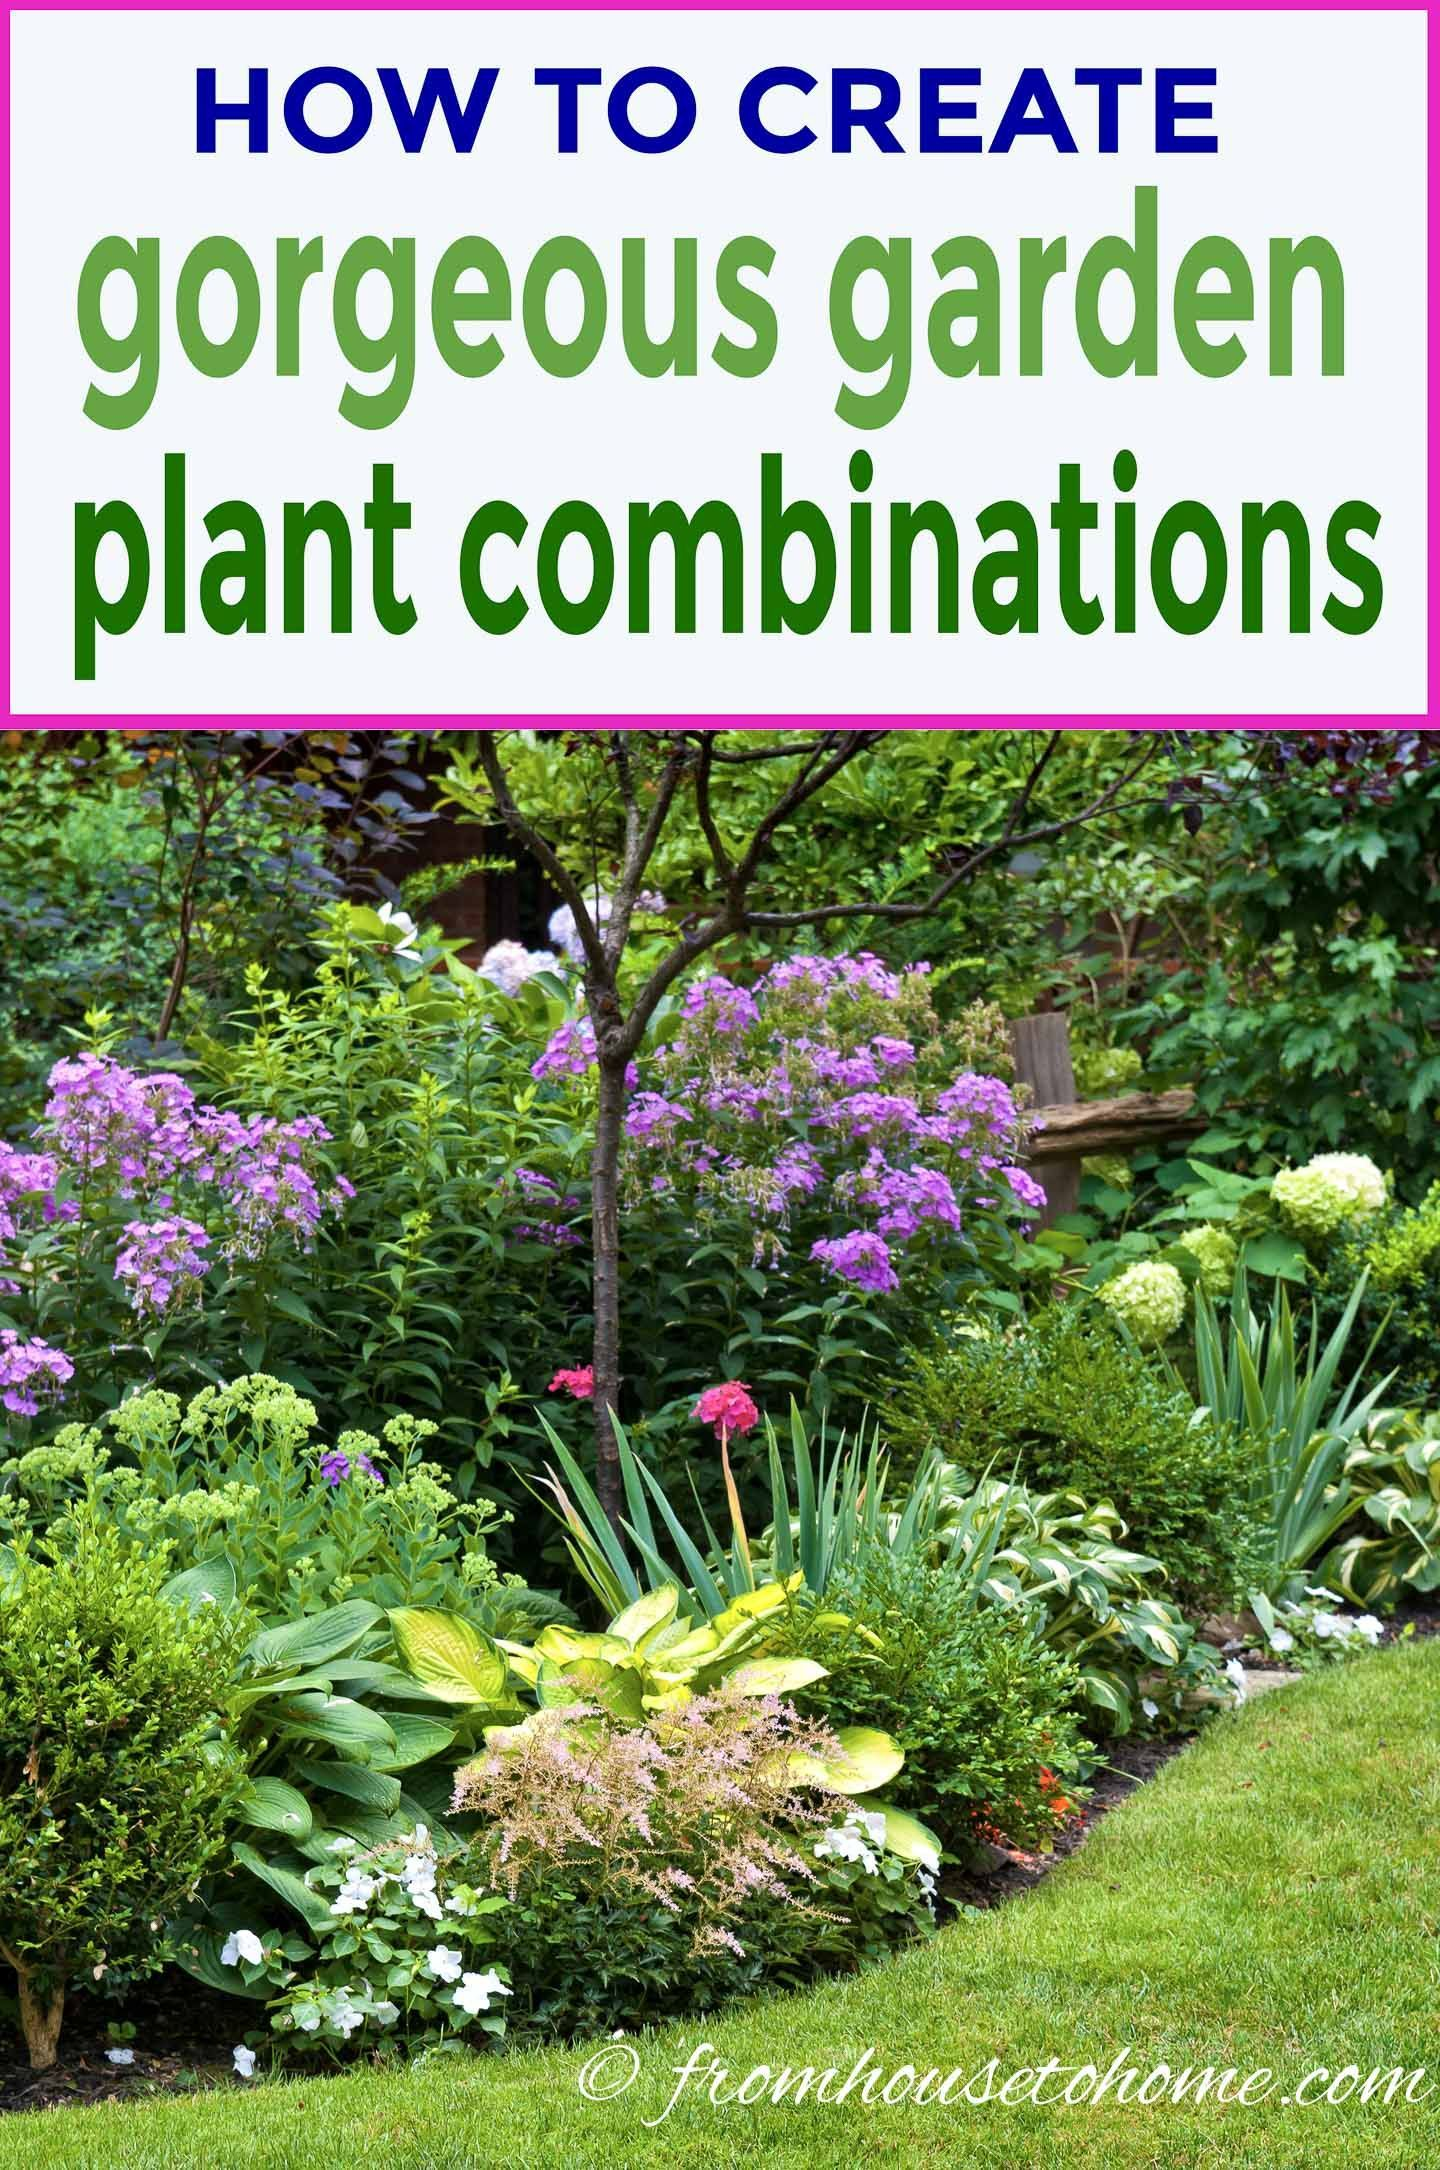 Garden Color Schemes (How To Create Gorgeous Garden Color Combinations) - Gardening @ From House To Home